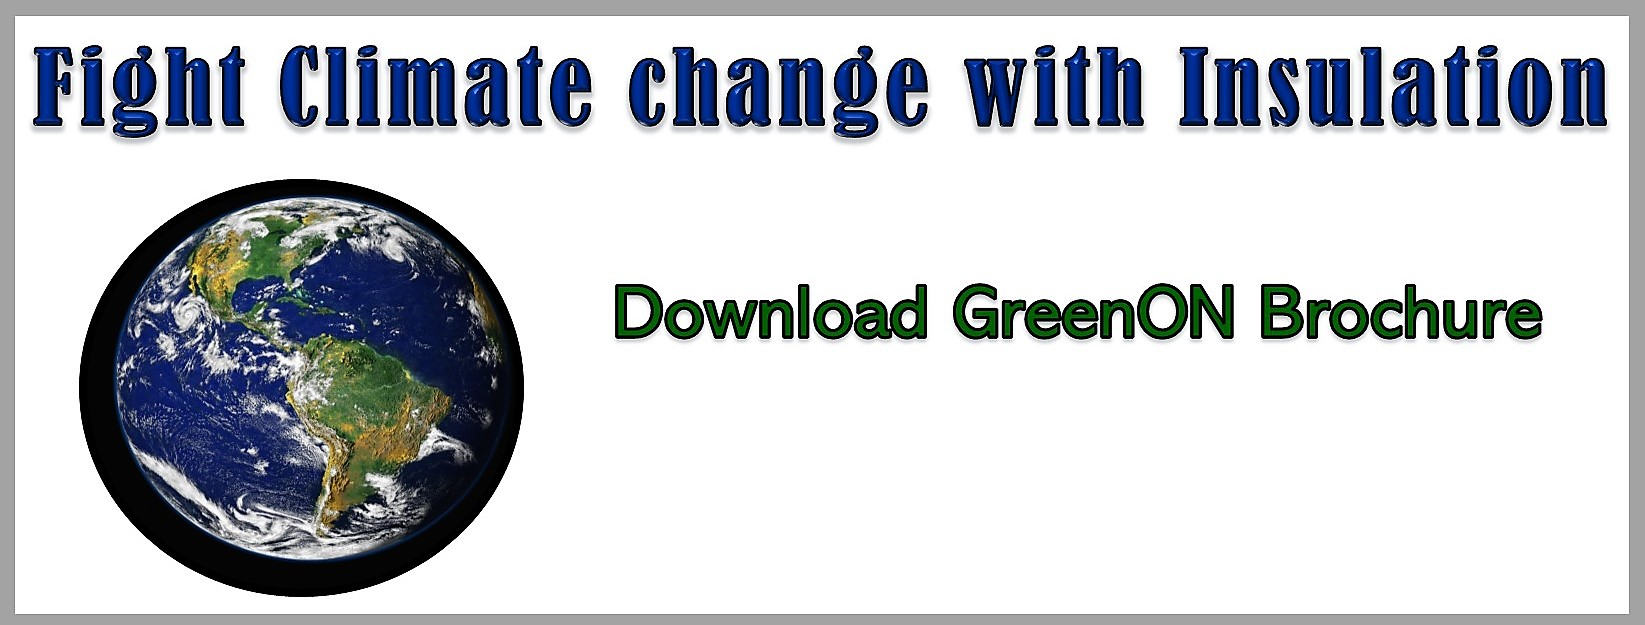 Fight climate change with insulation